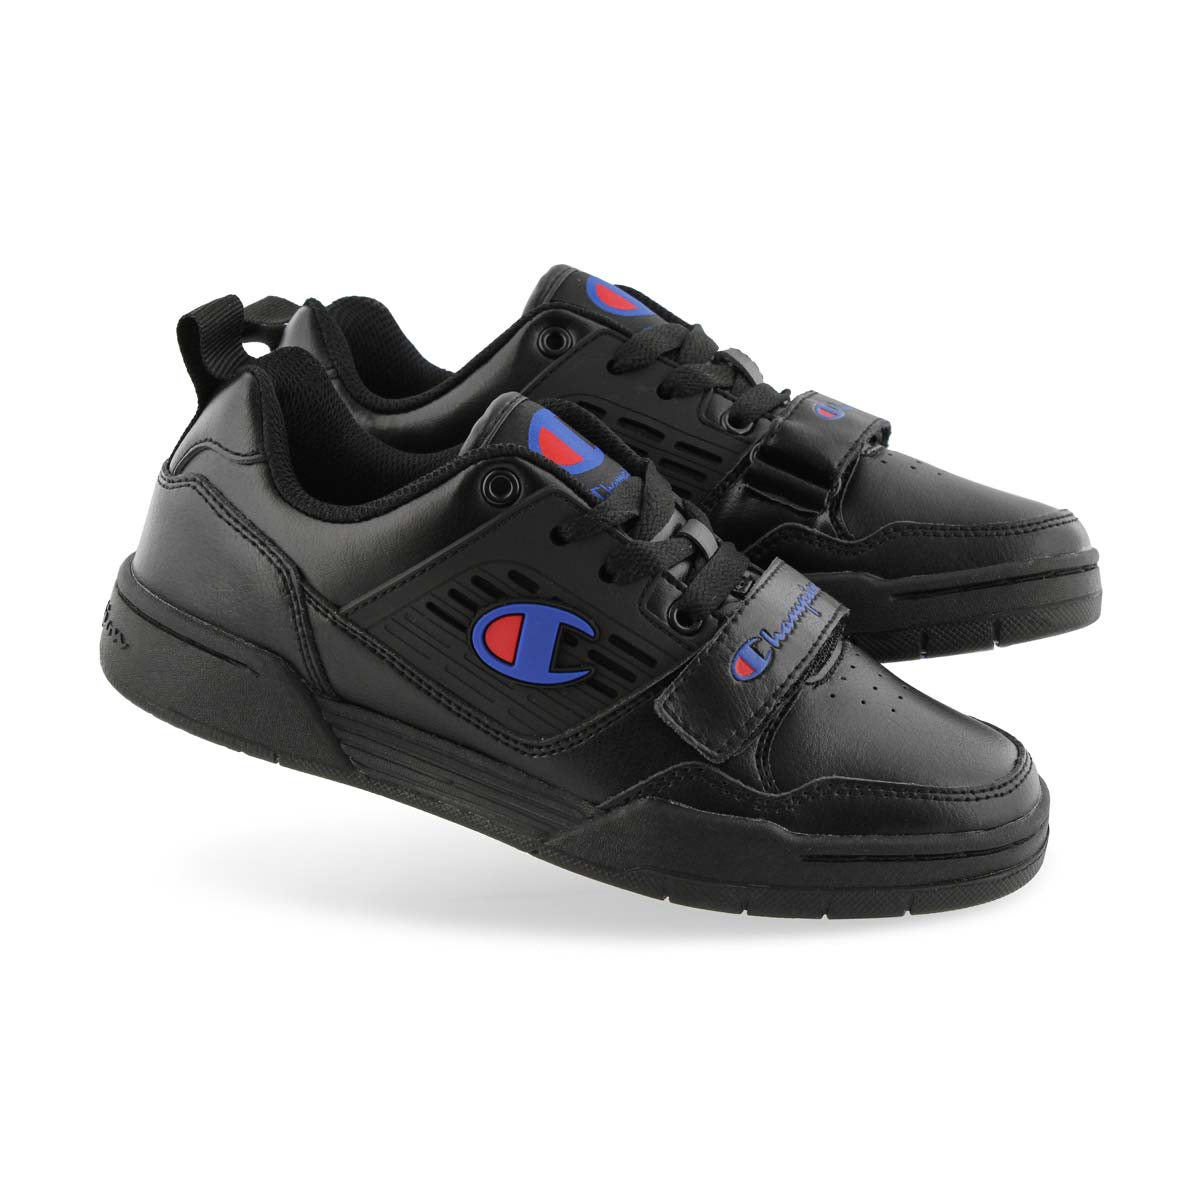 Kids' 3 On 3 Low Sneaker - Black